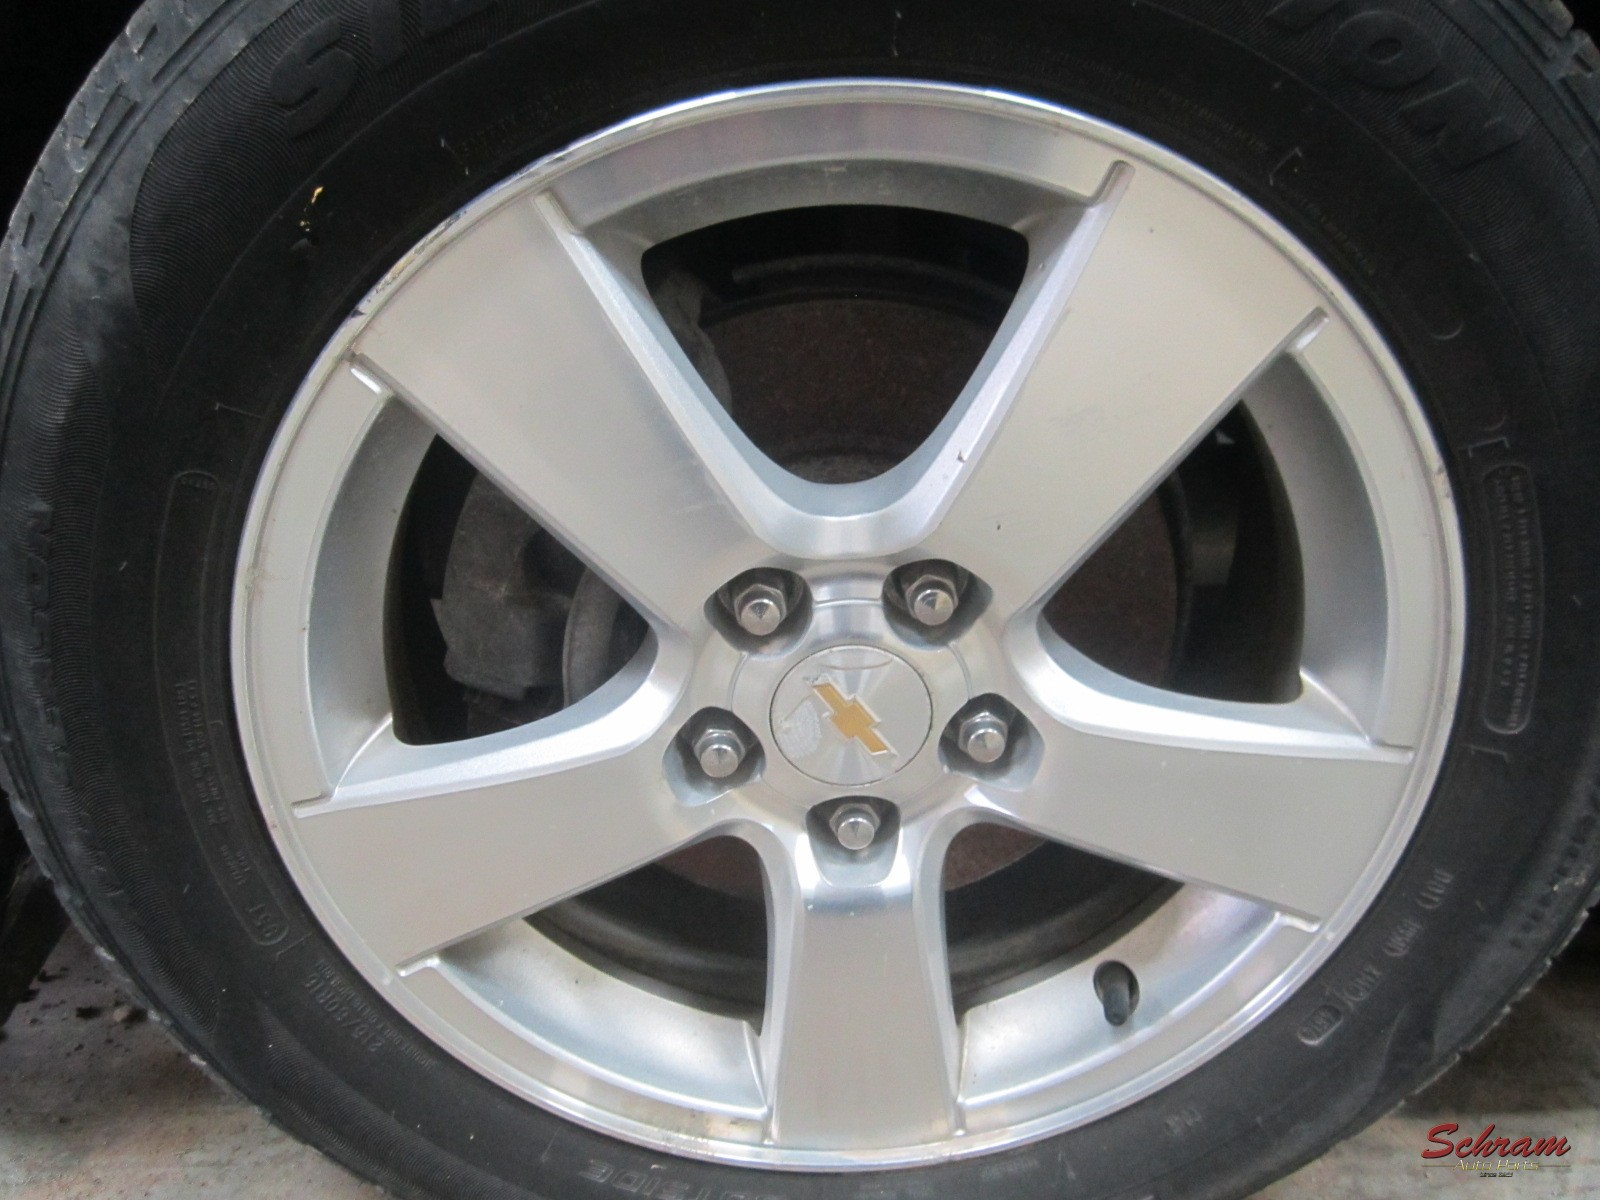 2012 CRUZE Wheel (5 single spoke, opt WR6)